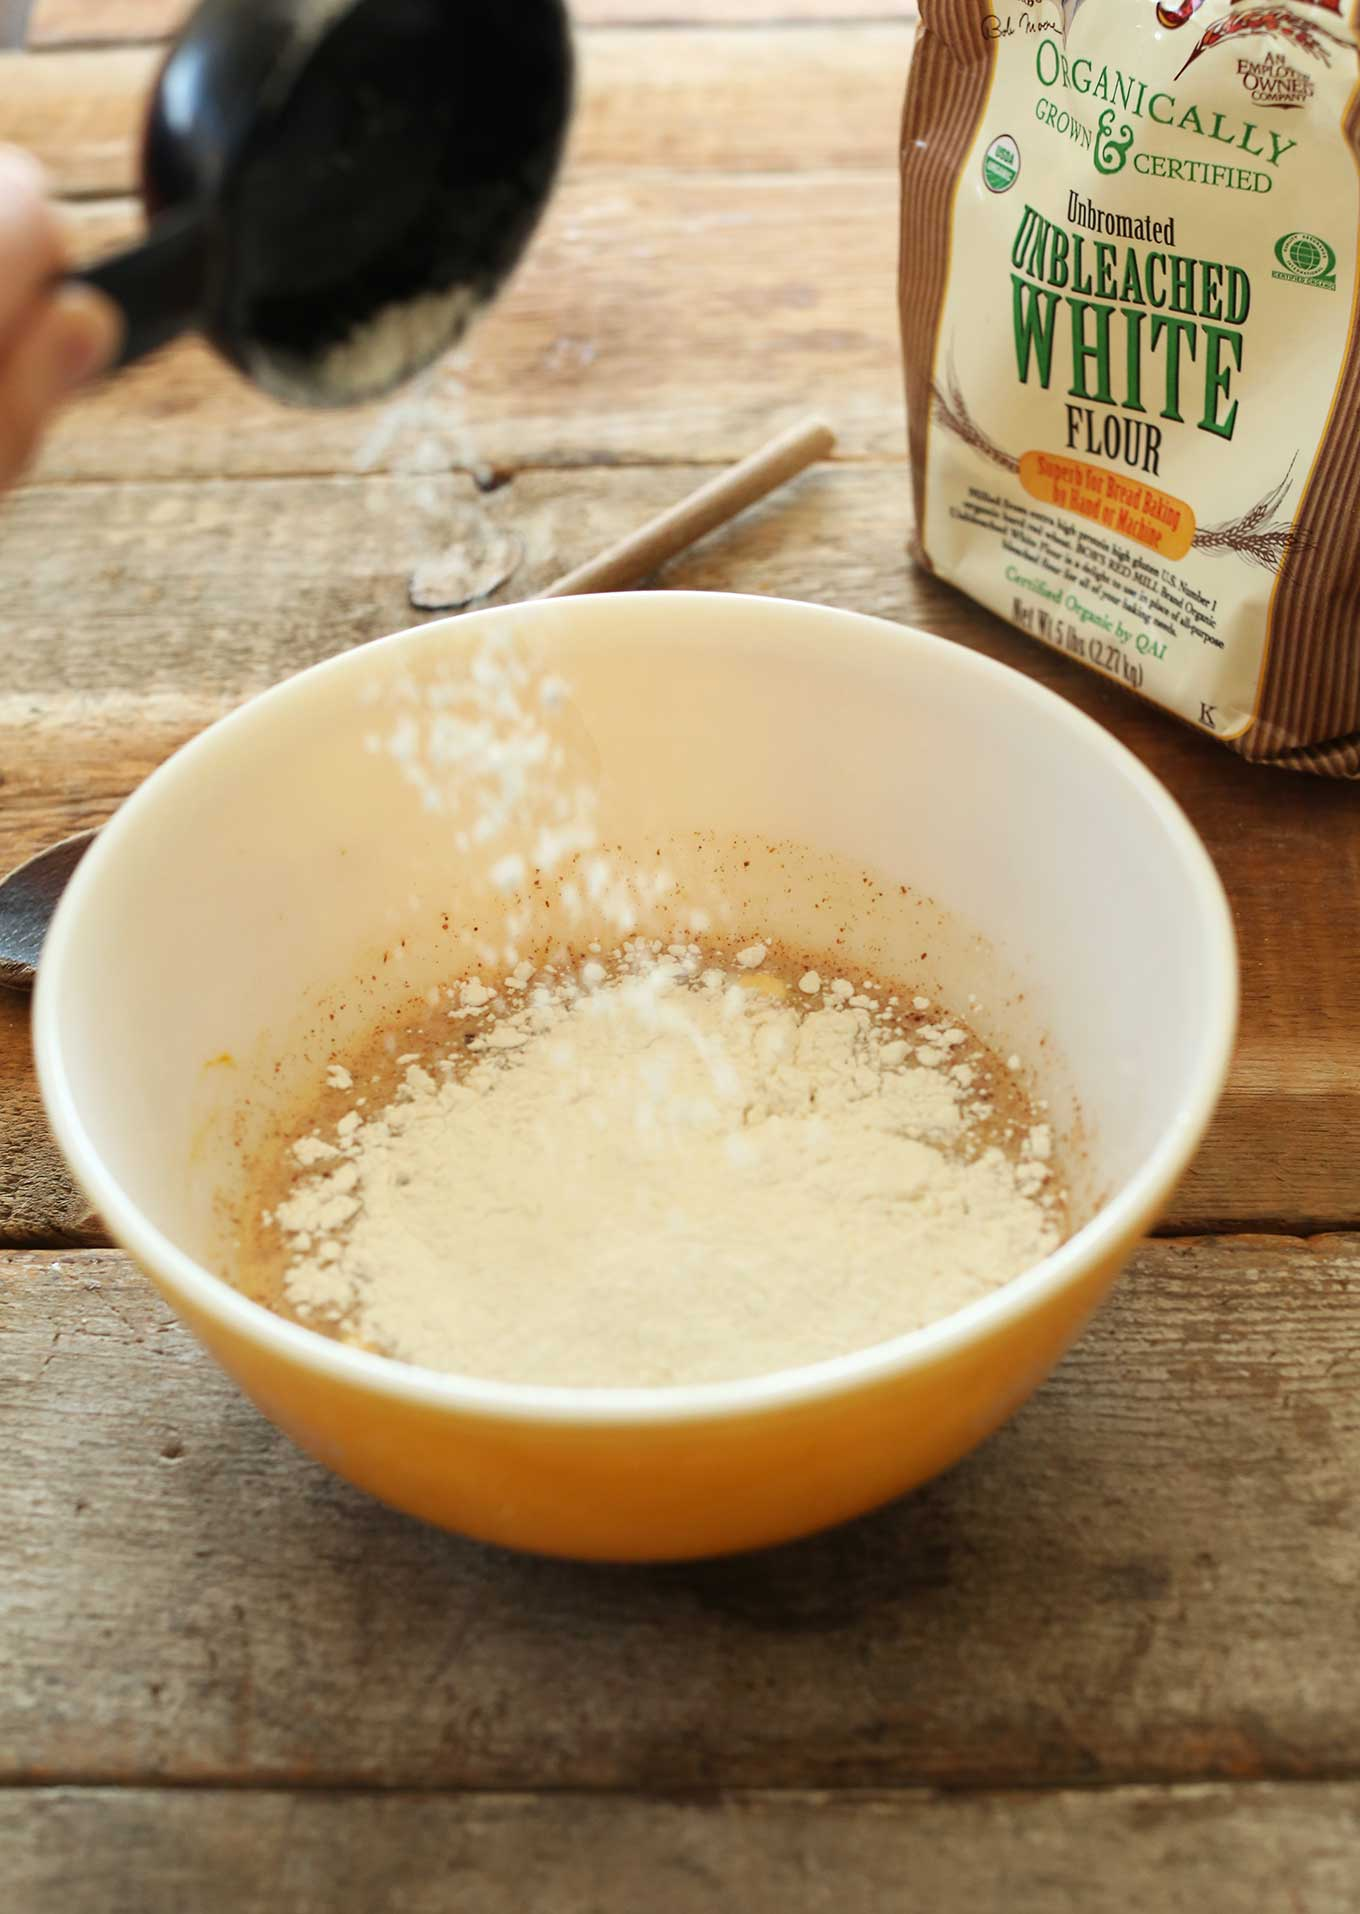 Pouring flour into the dough for making our Vegan Pumpkin Cinnamon Rolls recipe